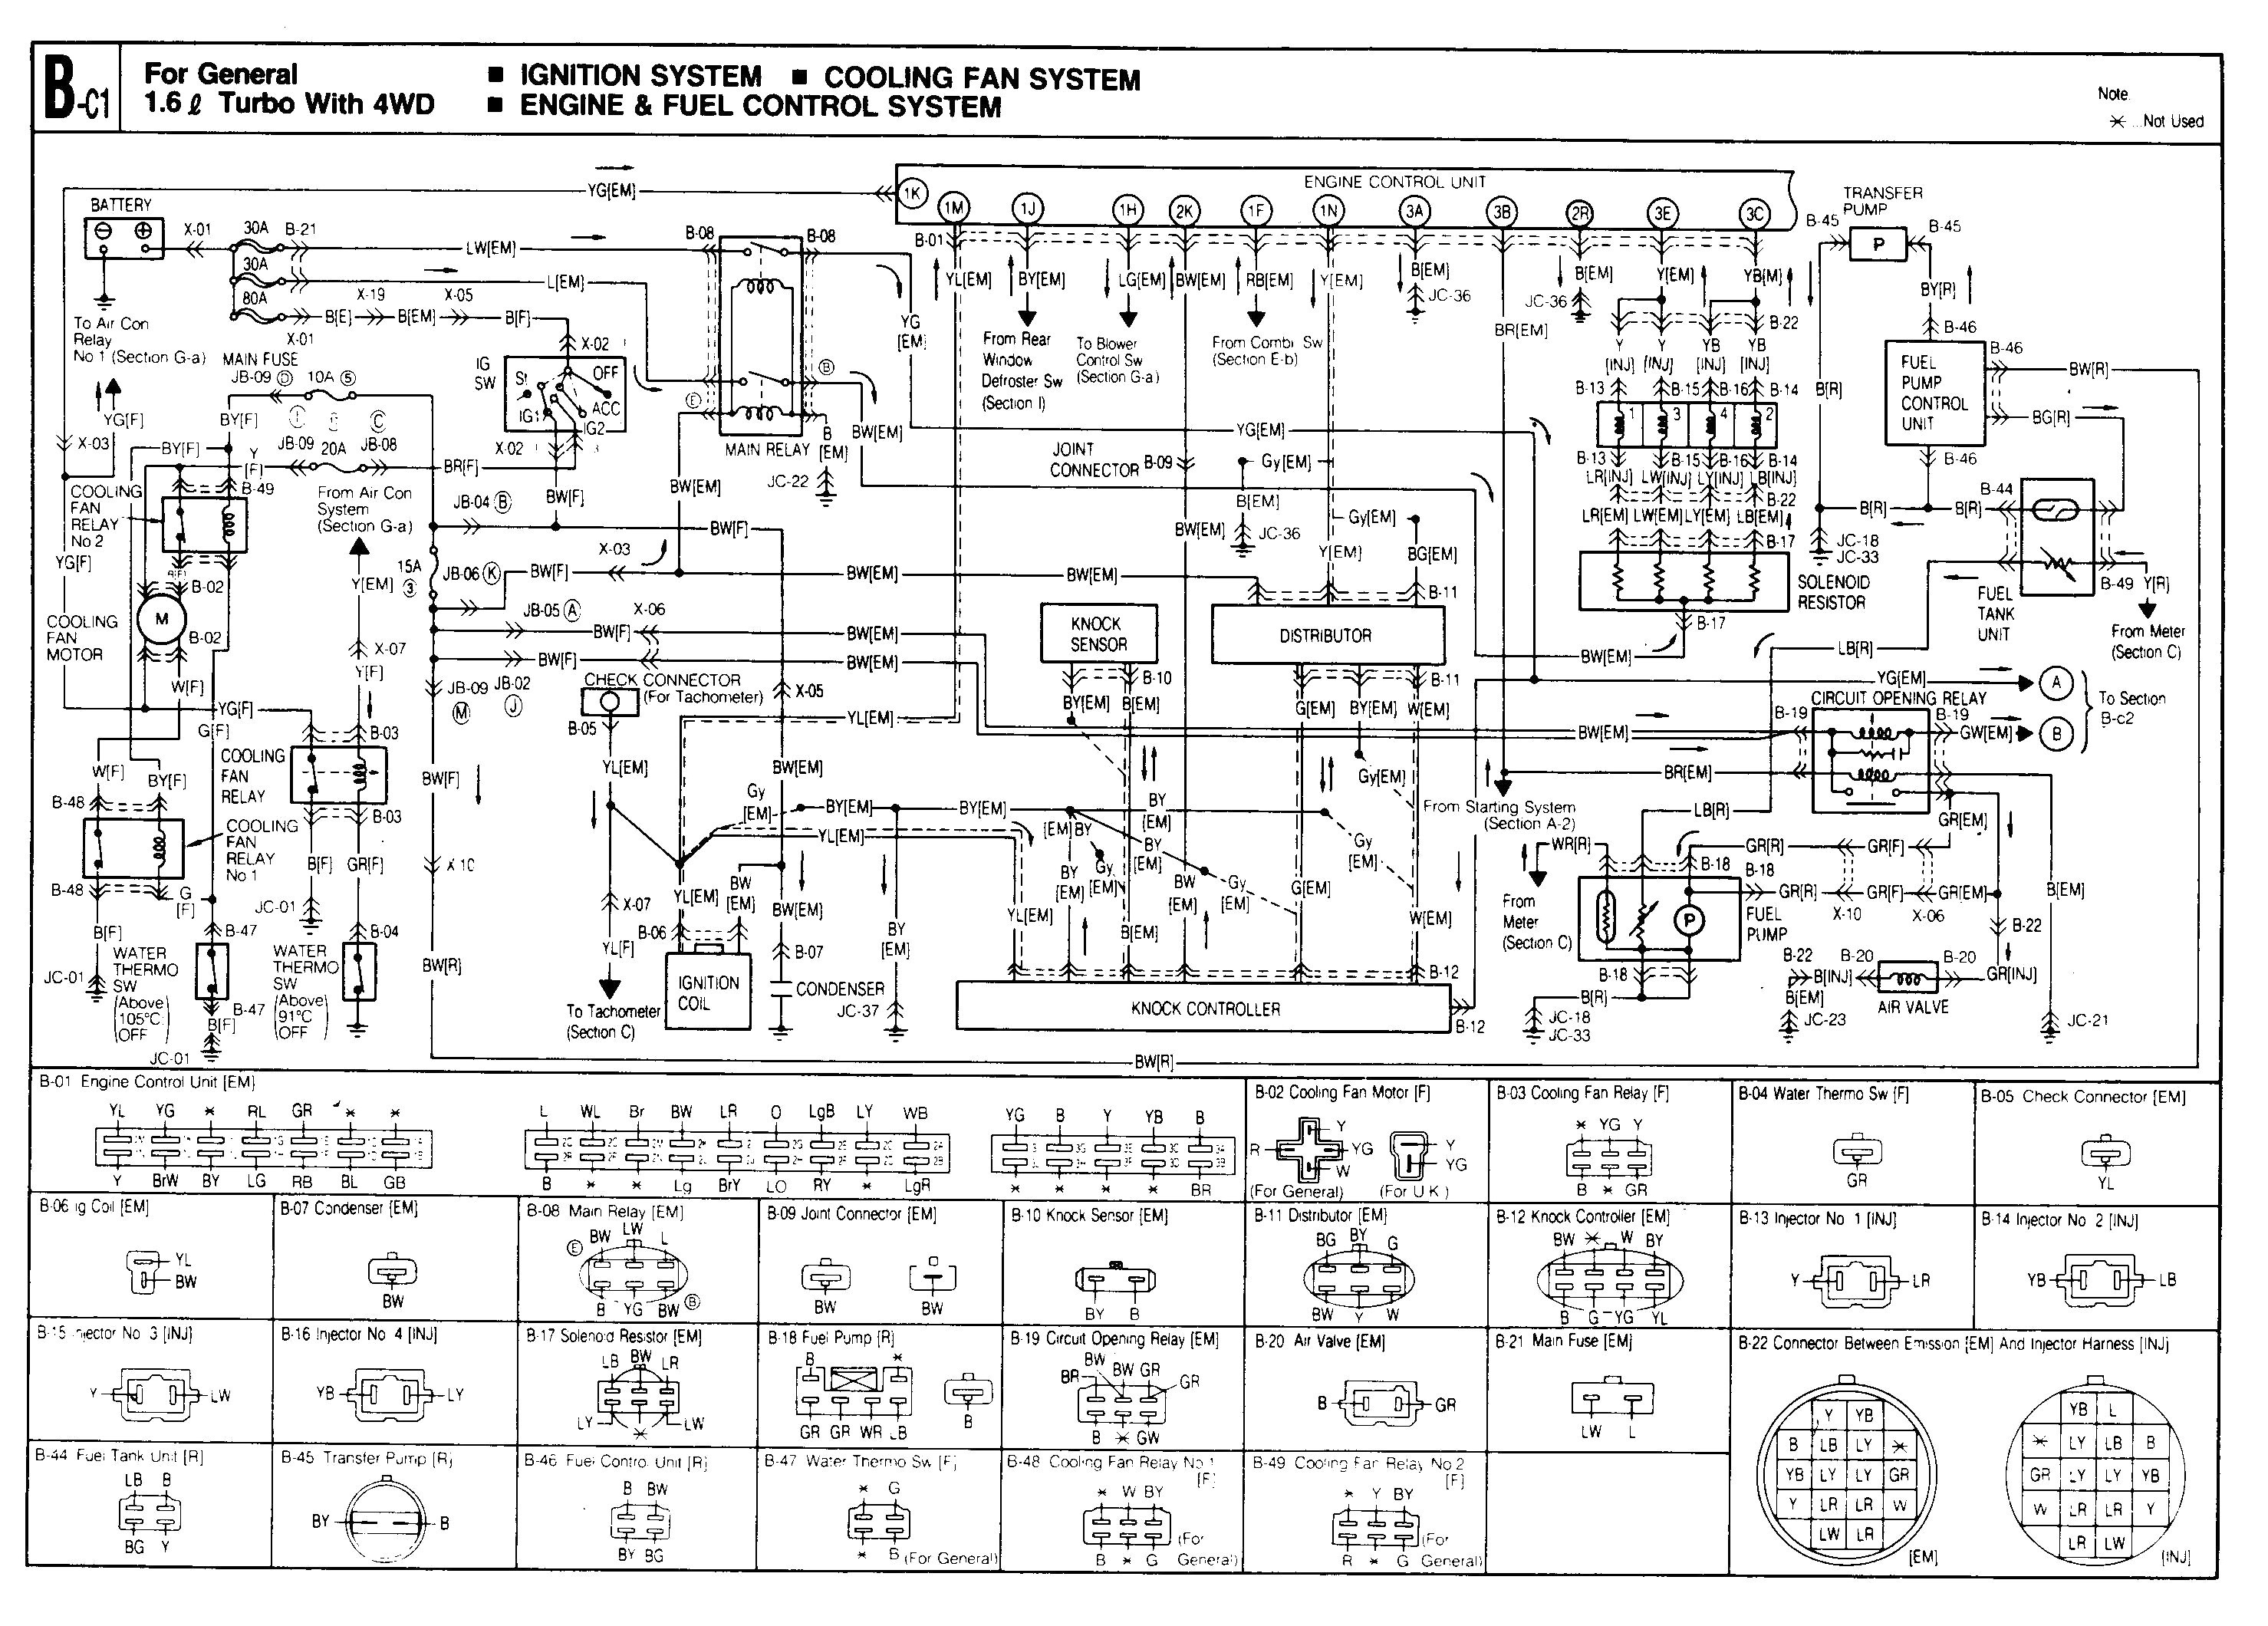 Mazda Mpv Wiring Diagram Wiring Diagram Hup Vulture Hup Vulture Saleebalocchi It